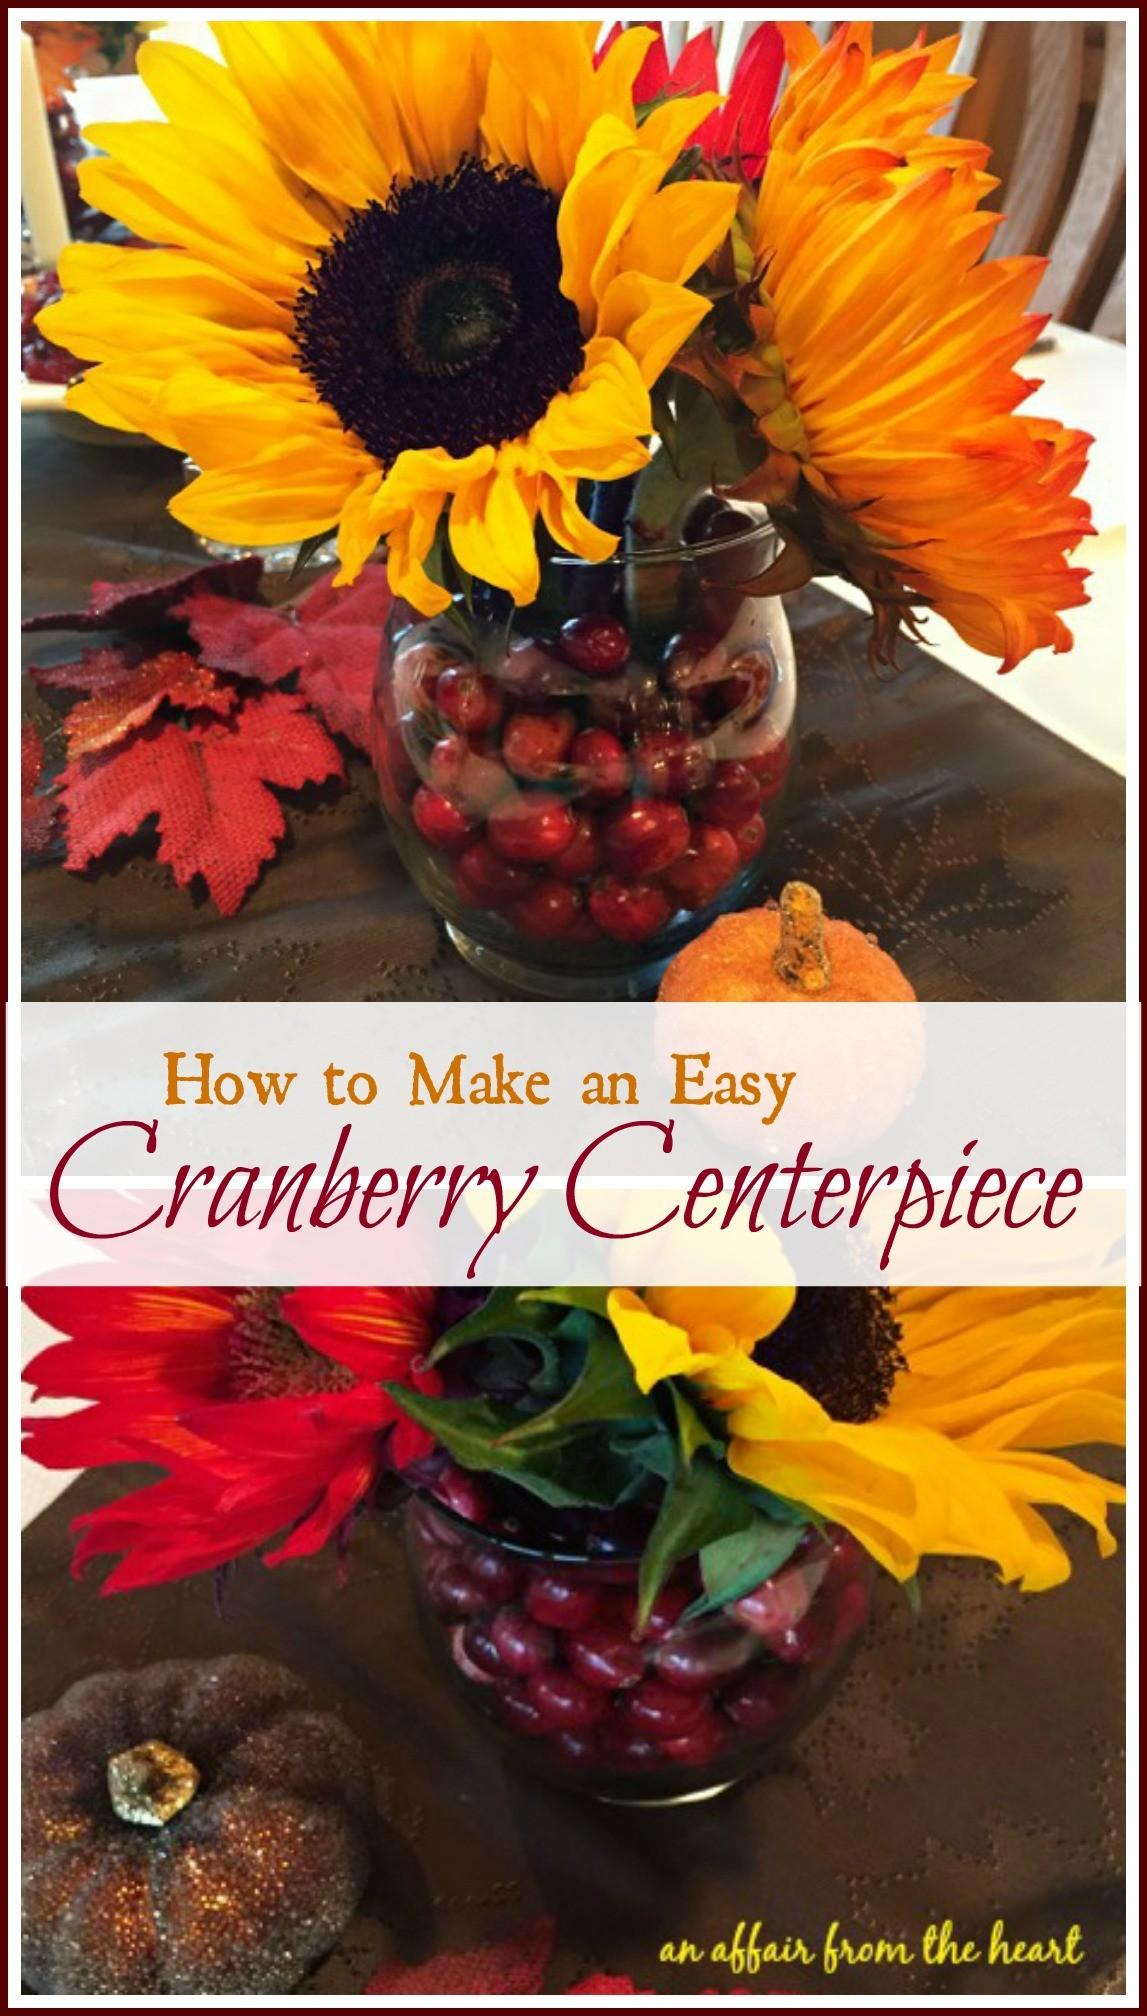 Make Easy Cranberry Centerpiece Affair